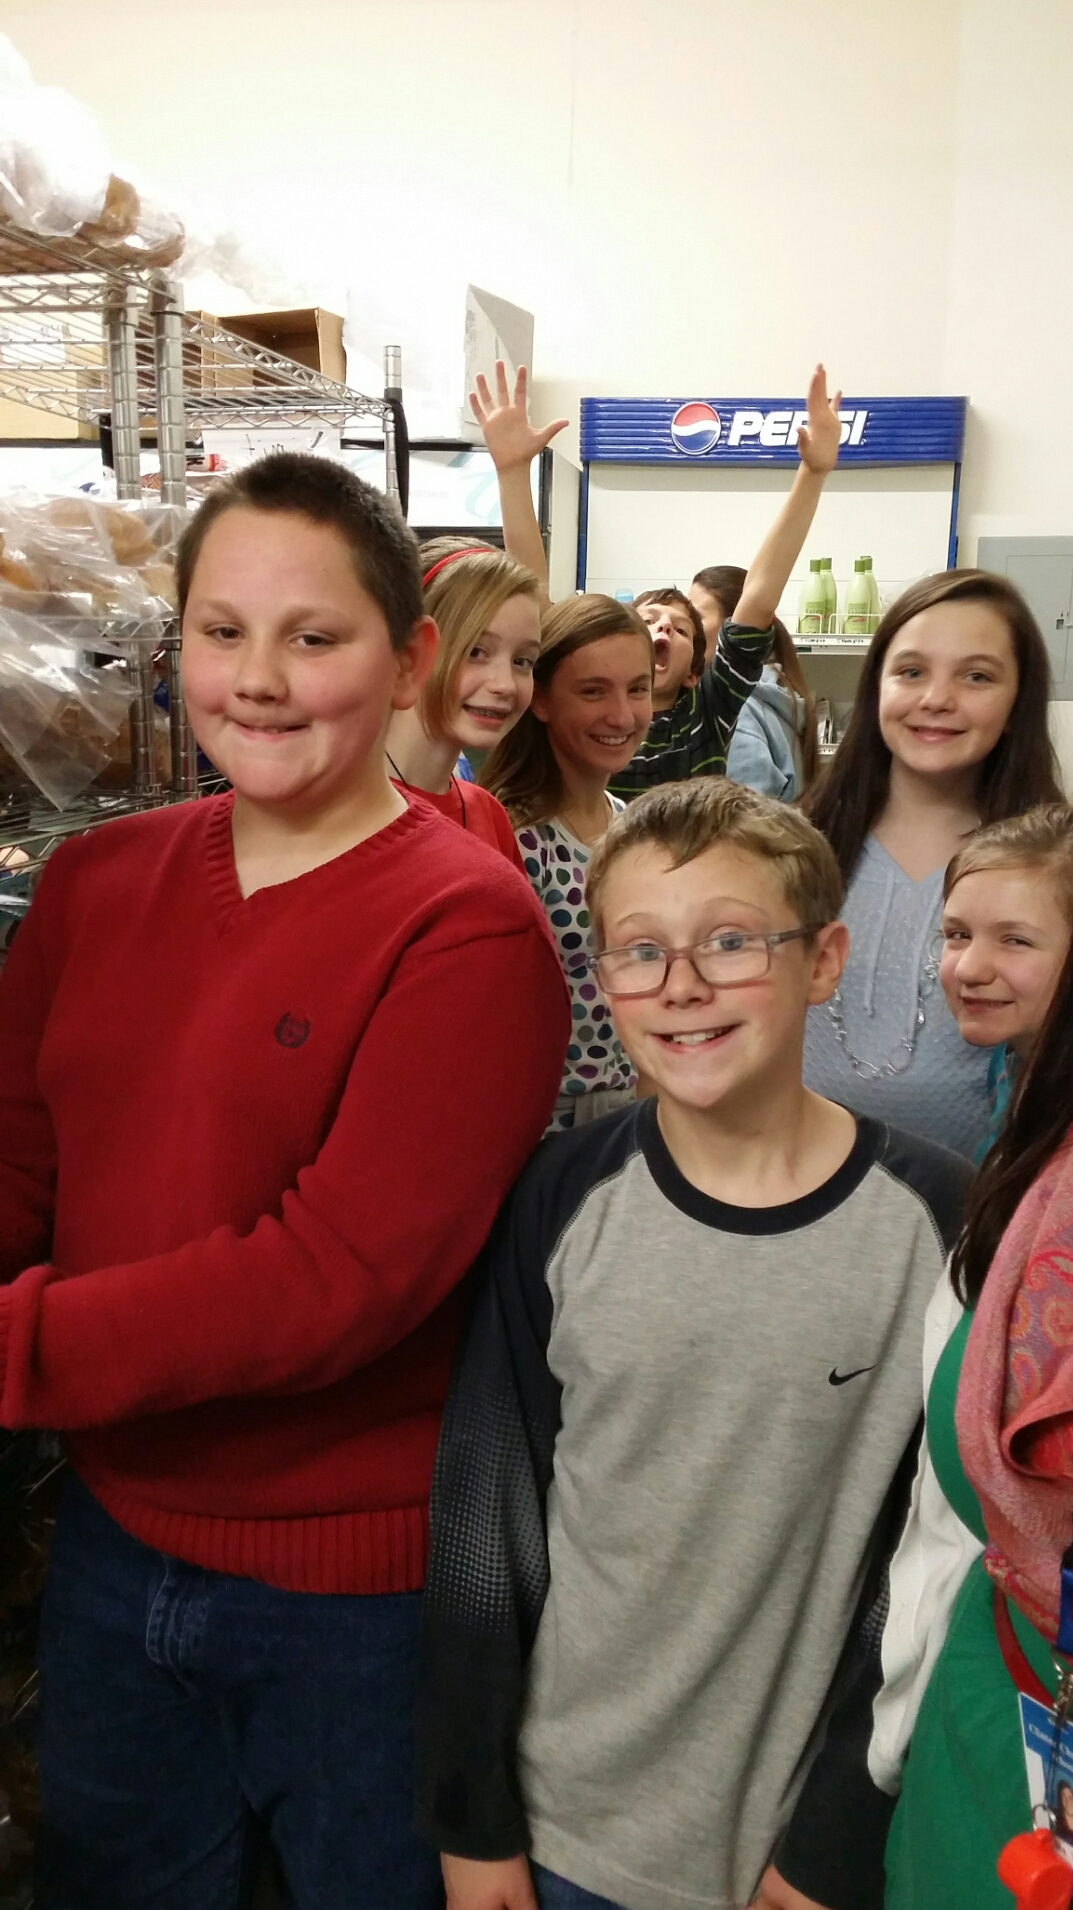 These kids are revved up and ready to sort through the bread racks!